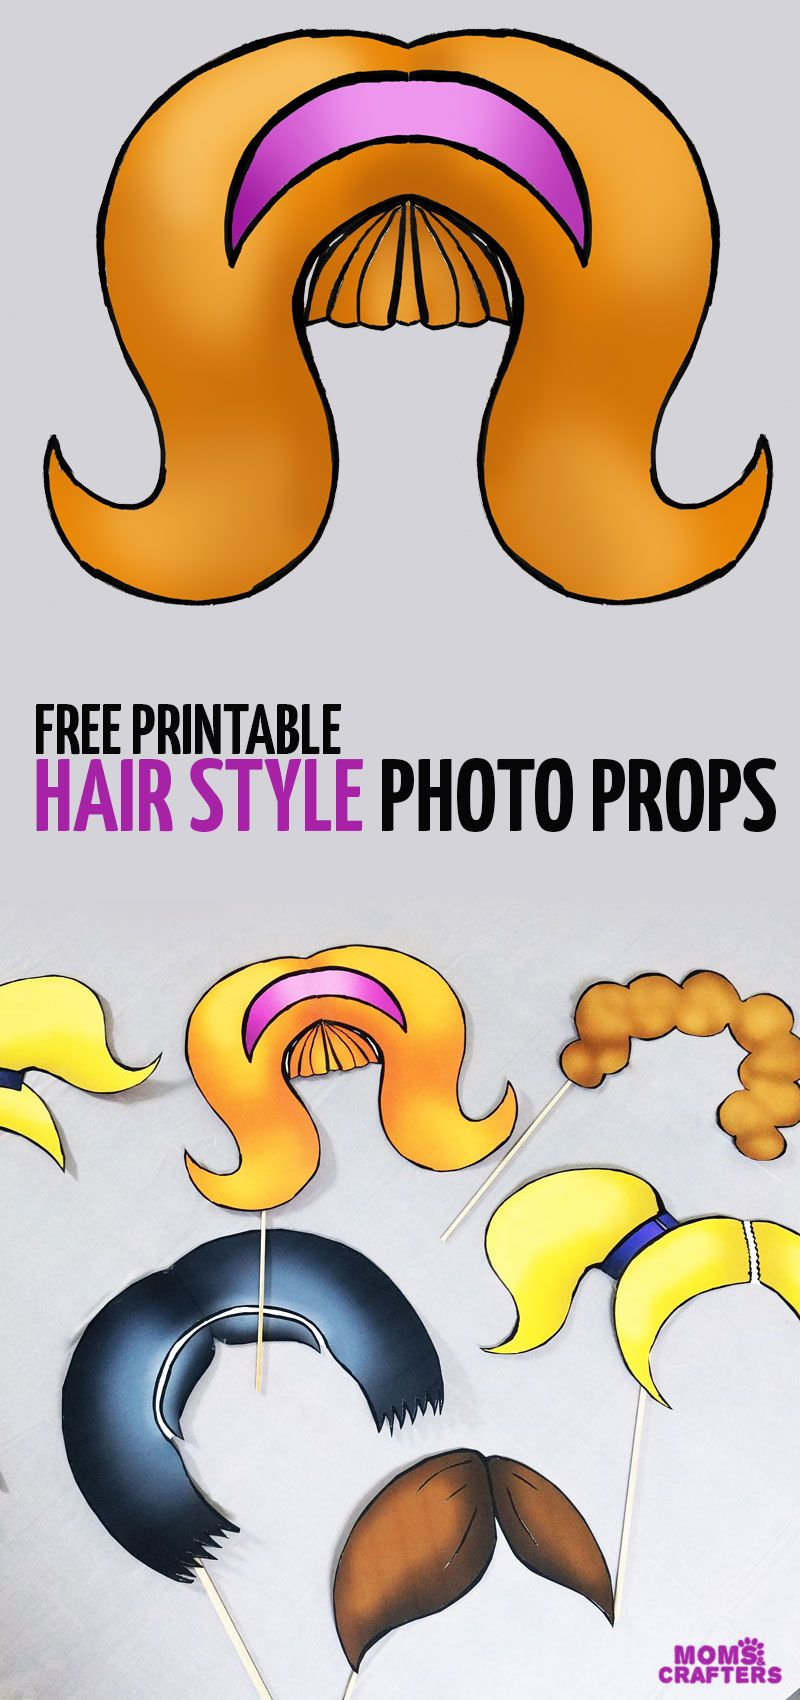 Free Printable Big Hair Photo Props! | Moms And Crafters: On The - Free Printable 70's Photo Booth Props